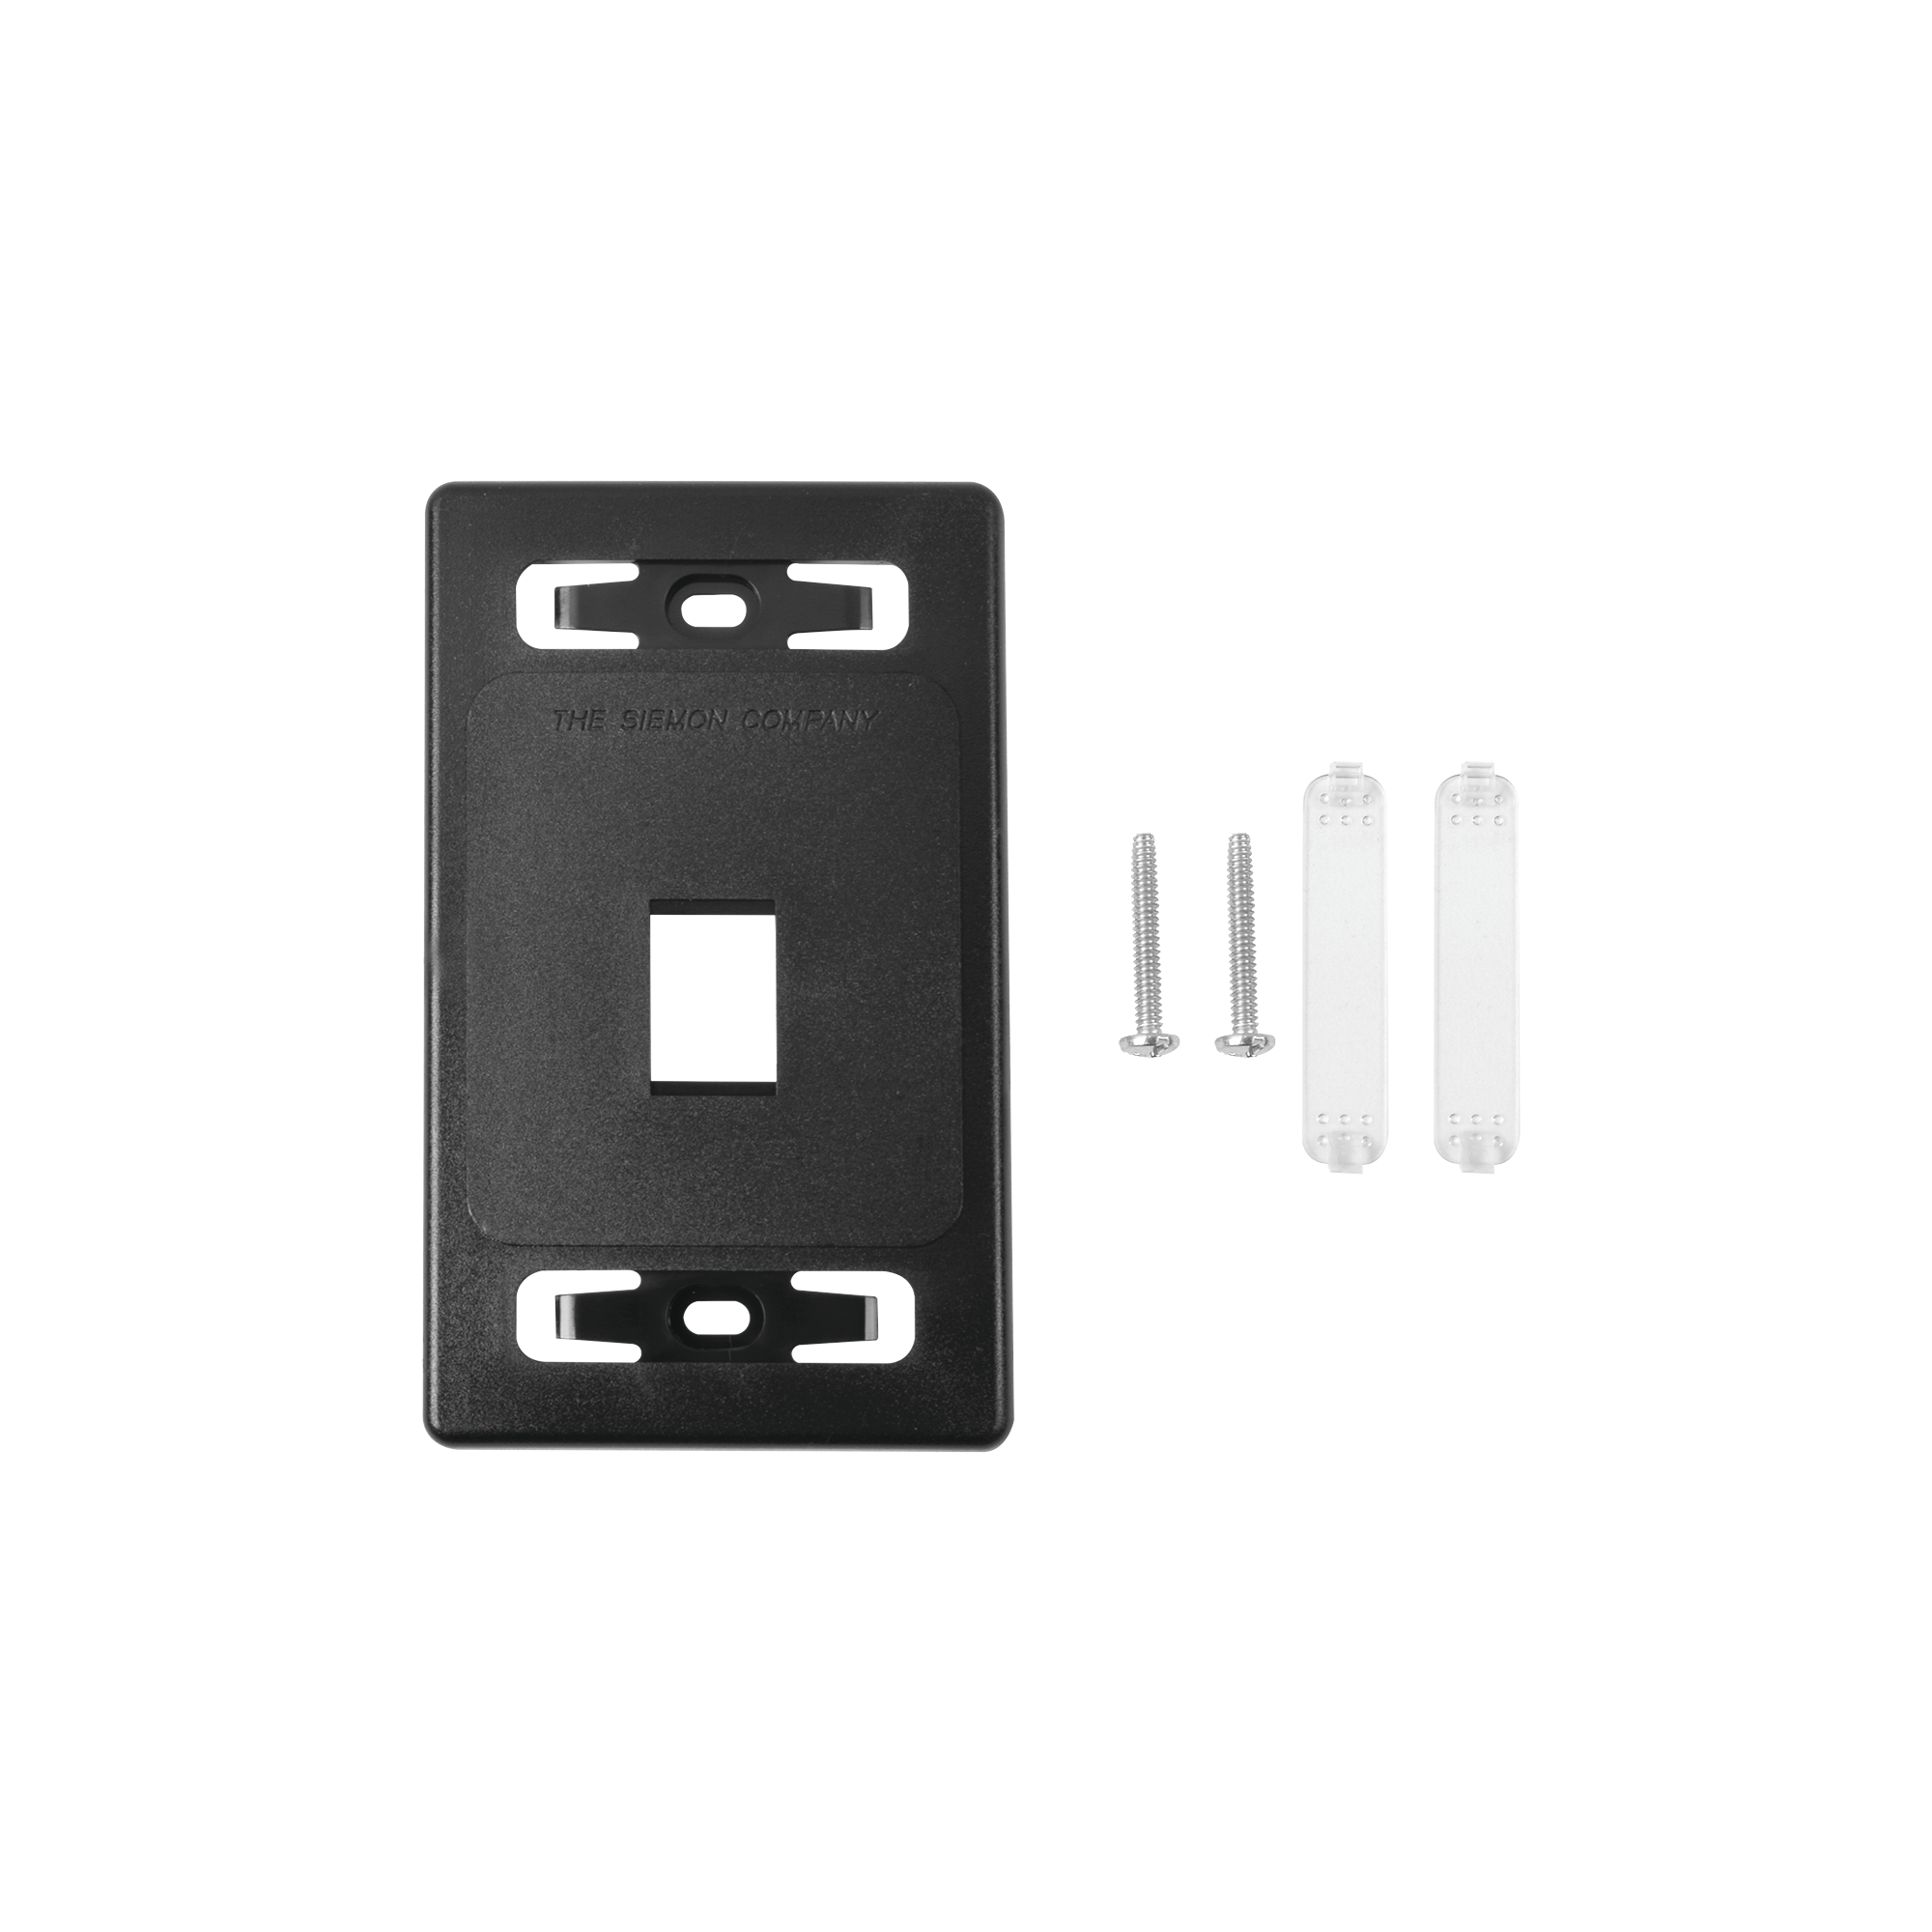 Placa de pared modular MAX, de 1 salida, Color Negro